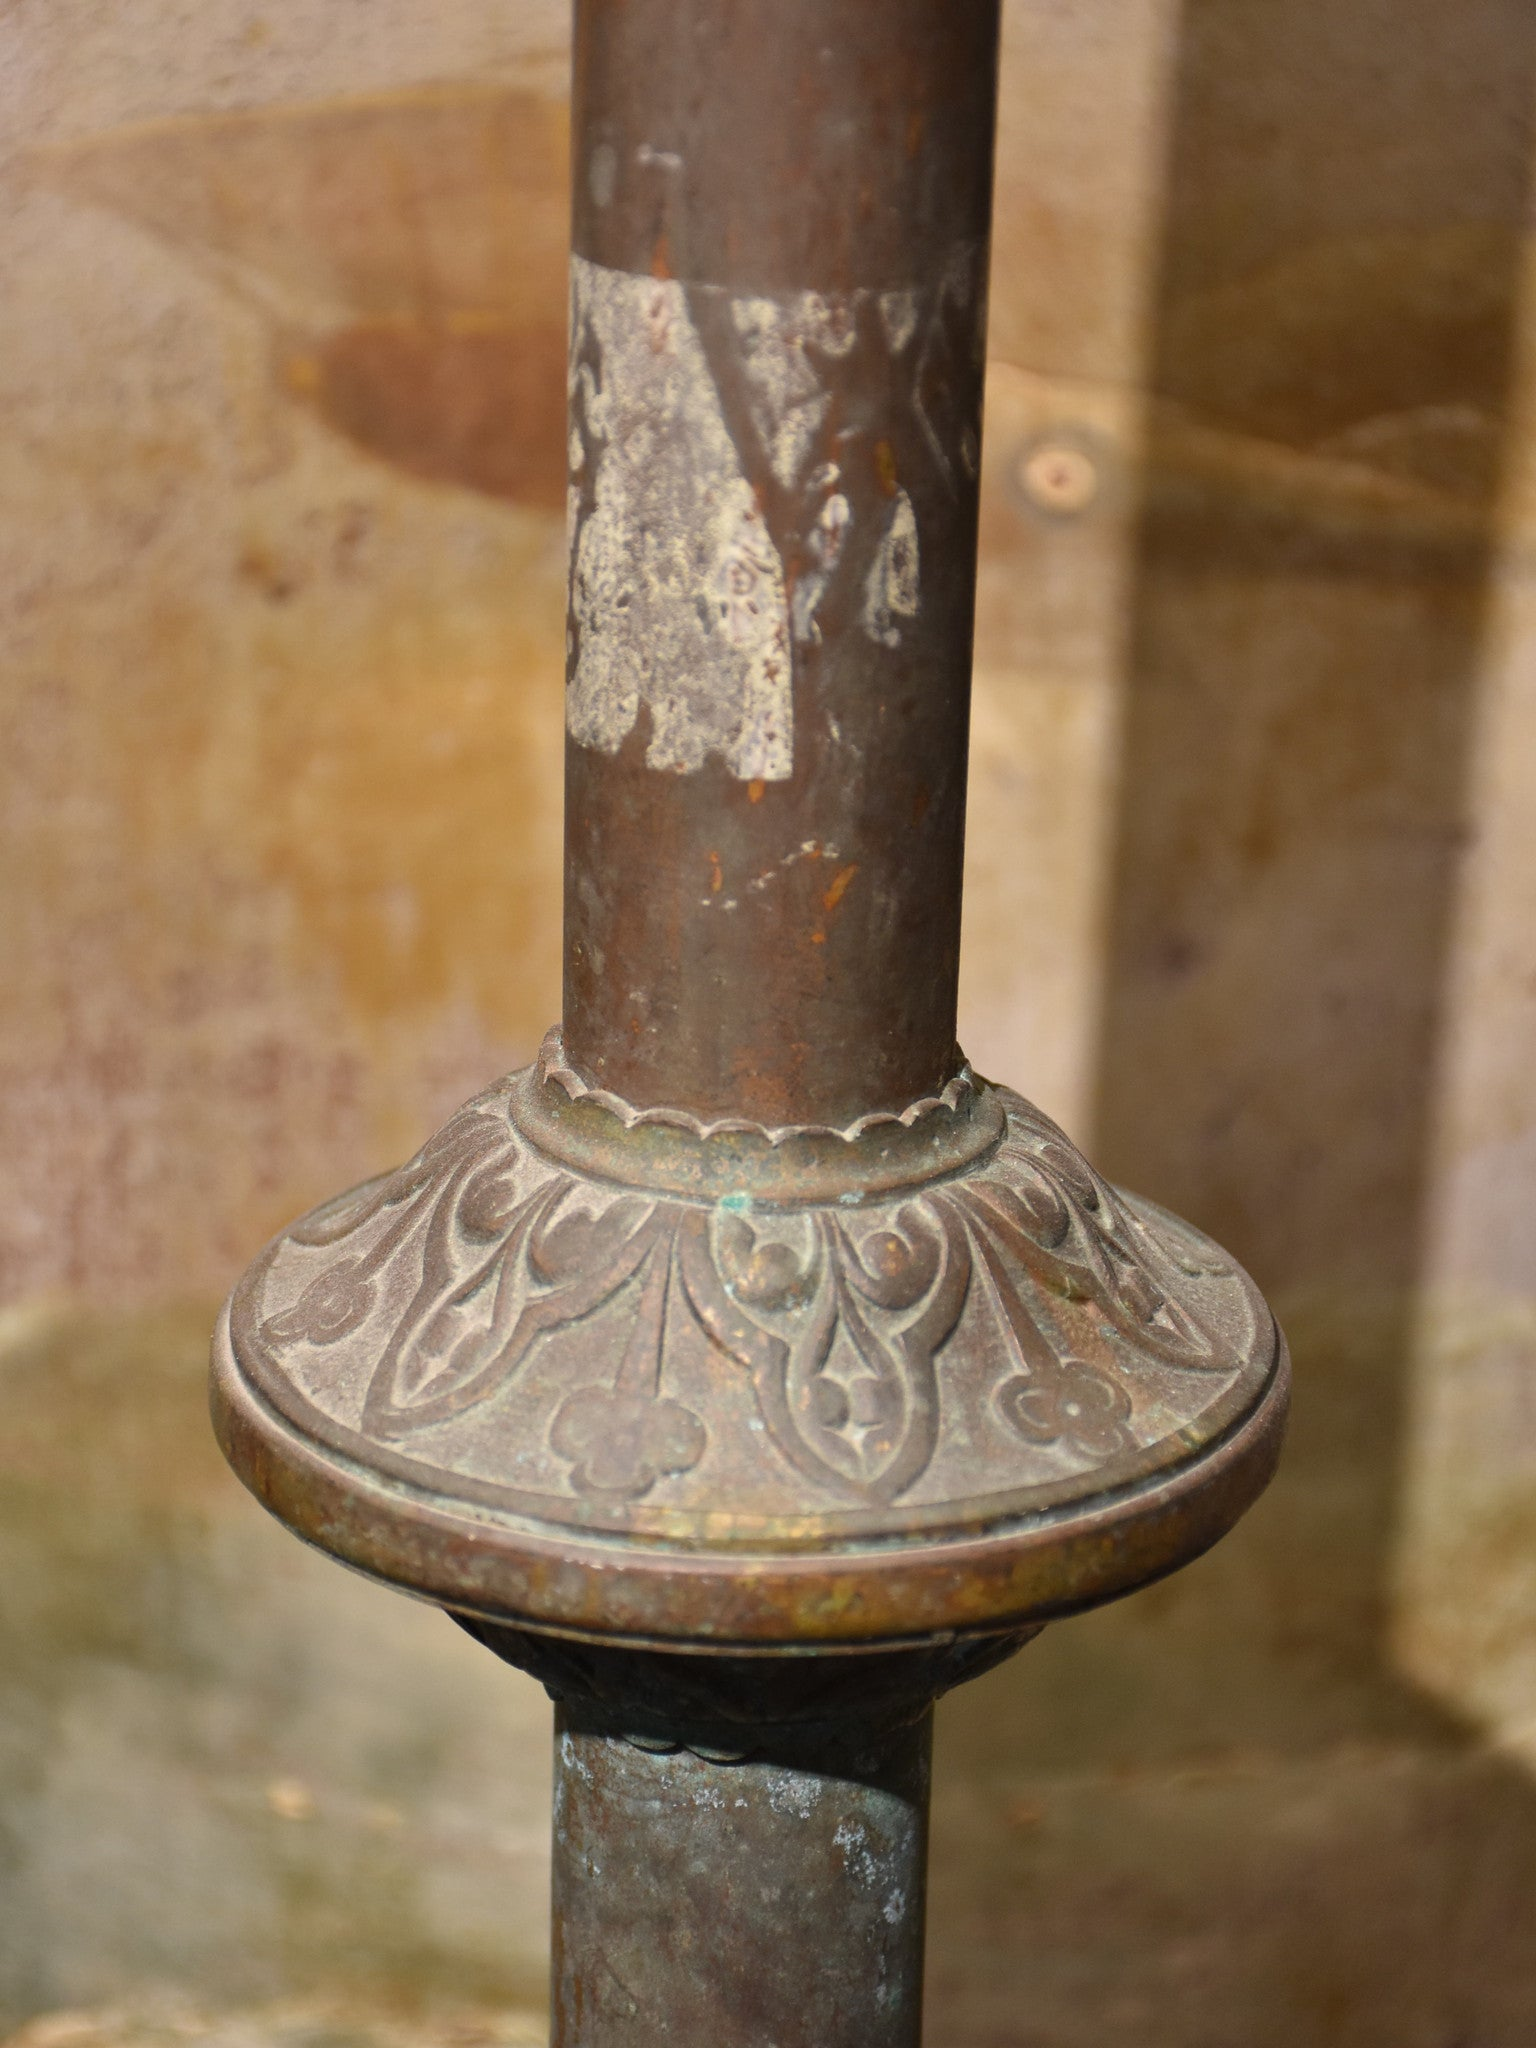 Large antique French candlestick - copper